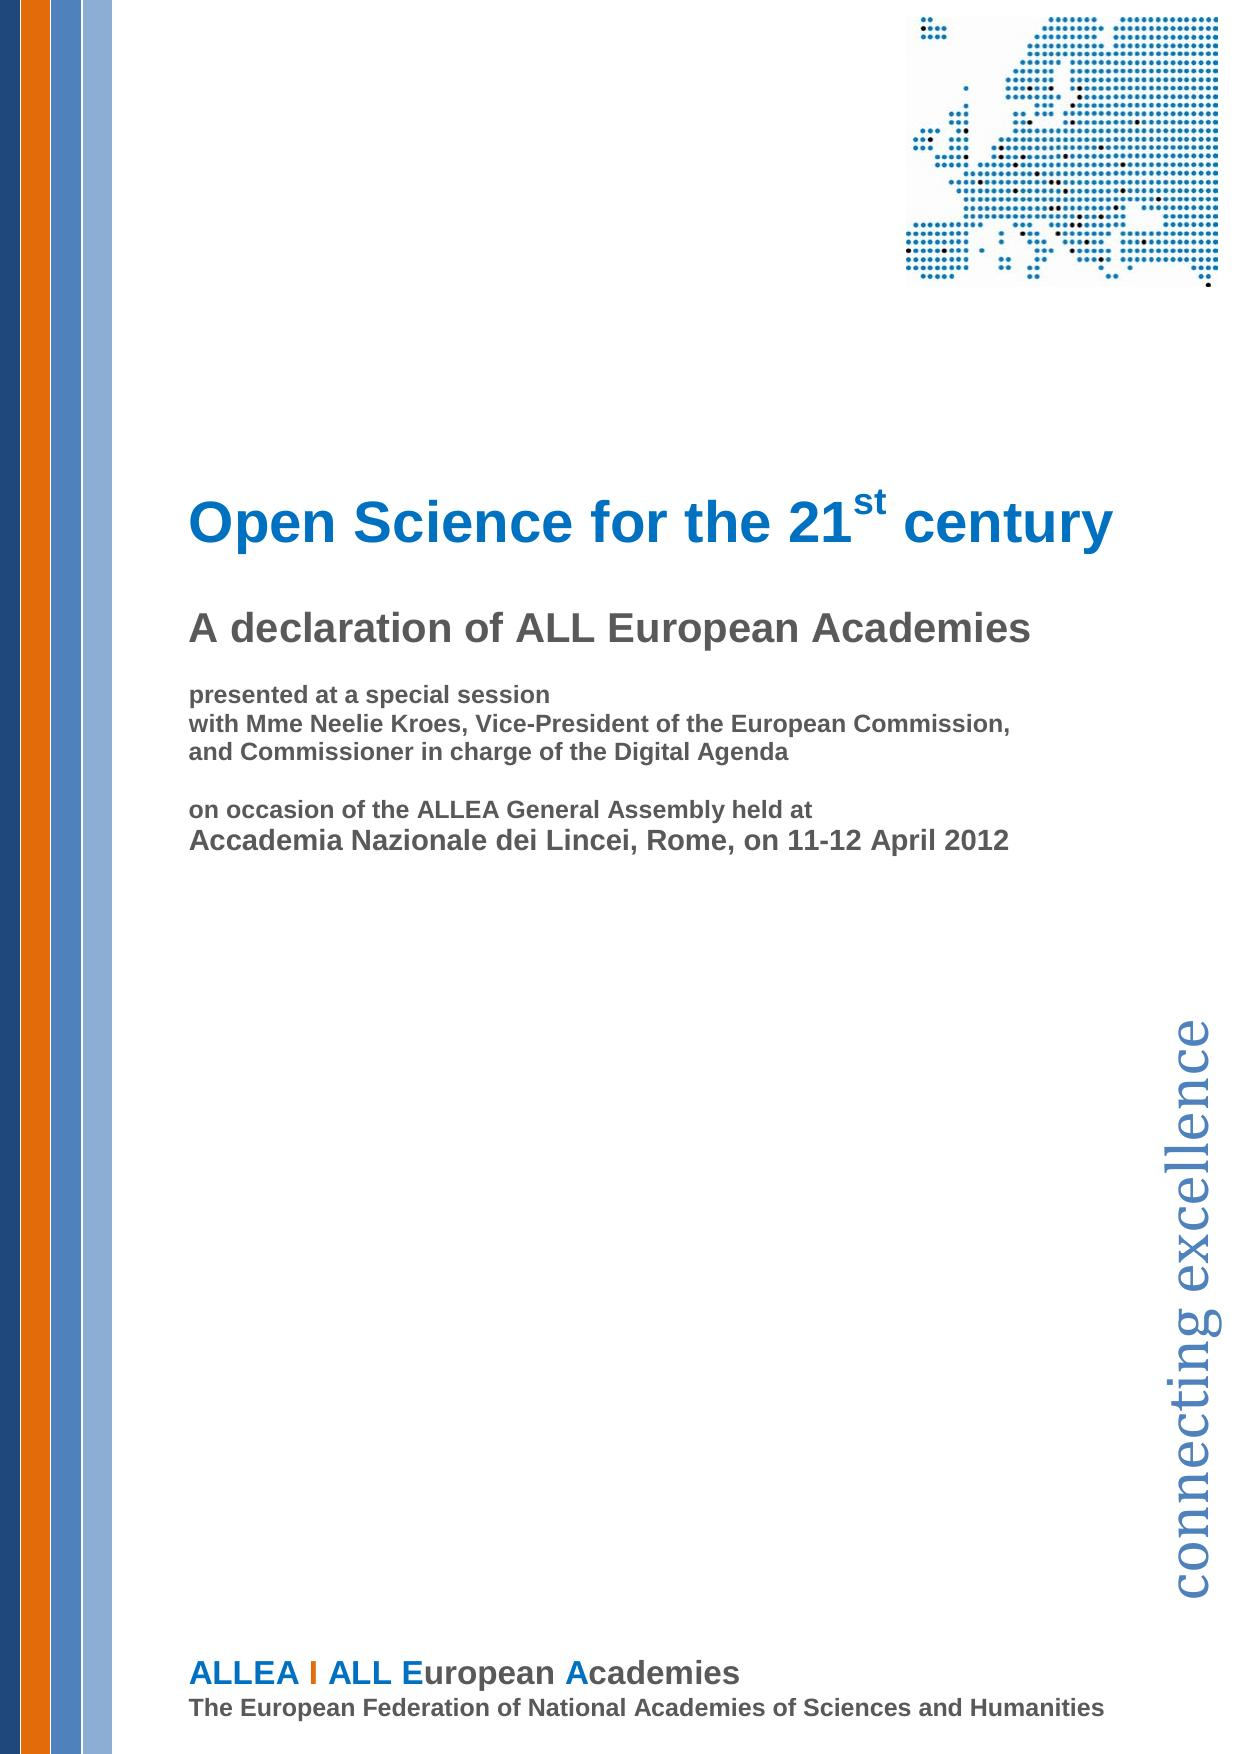 Open Science for the 21st century. A declarationn of National Academies of Sciences & Humanities